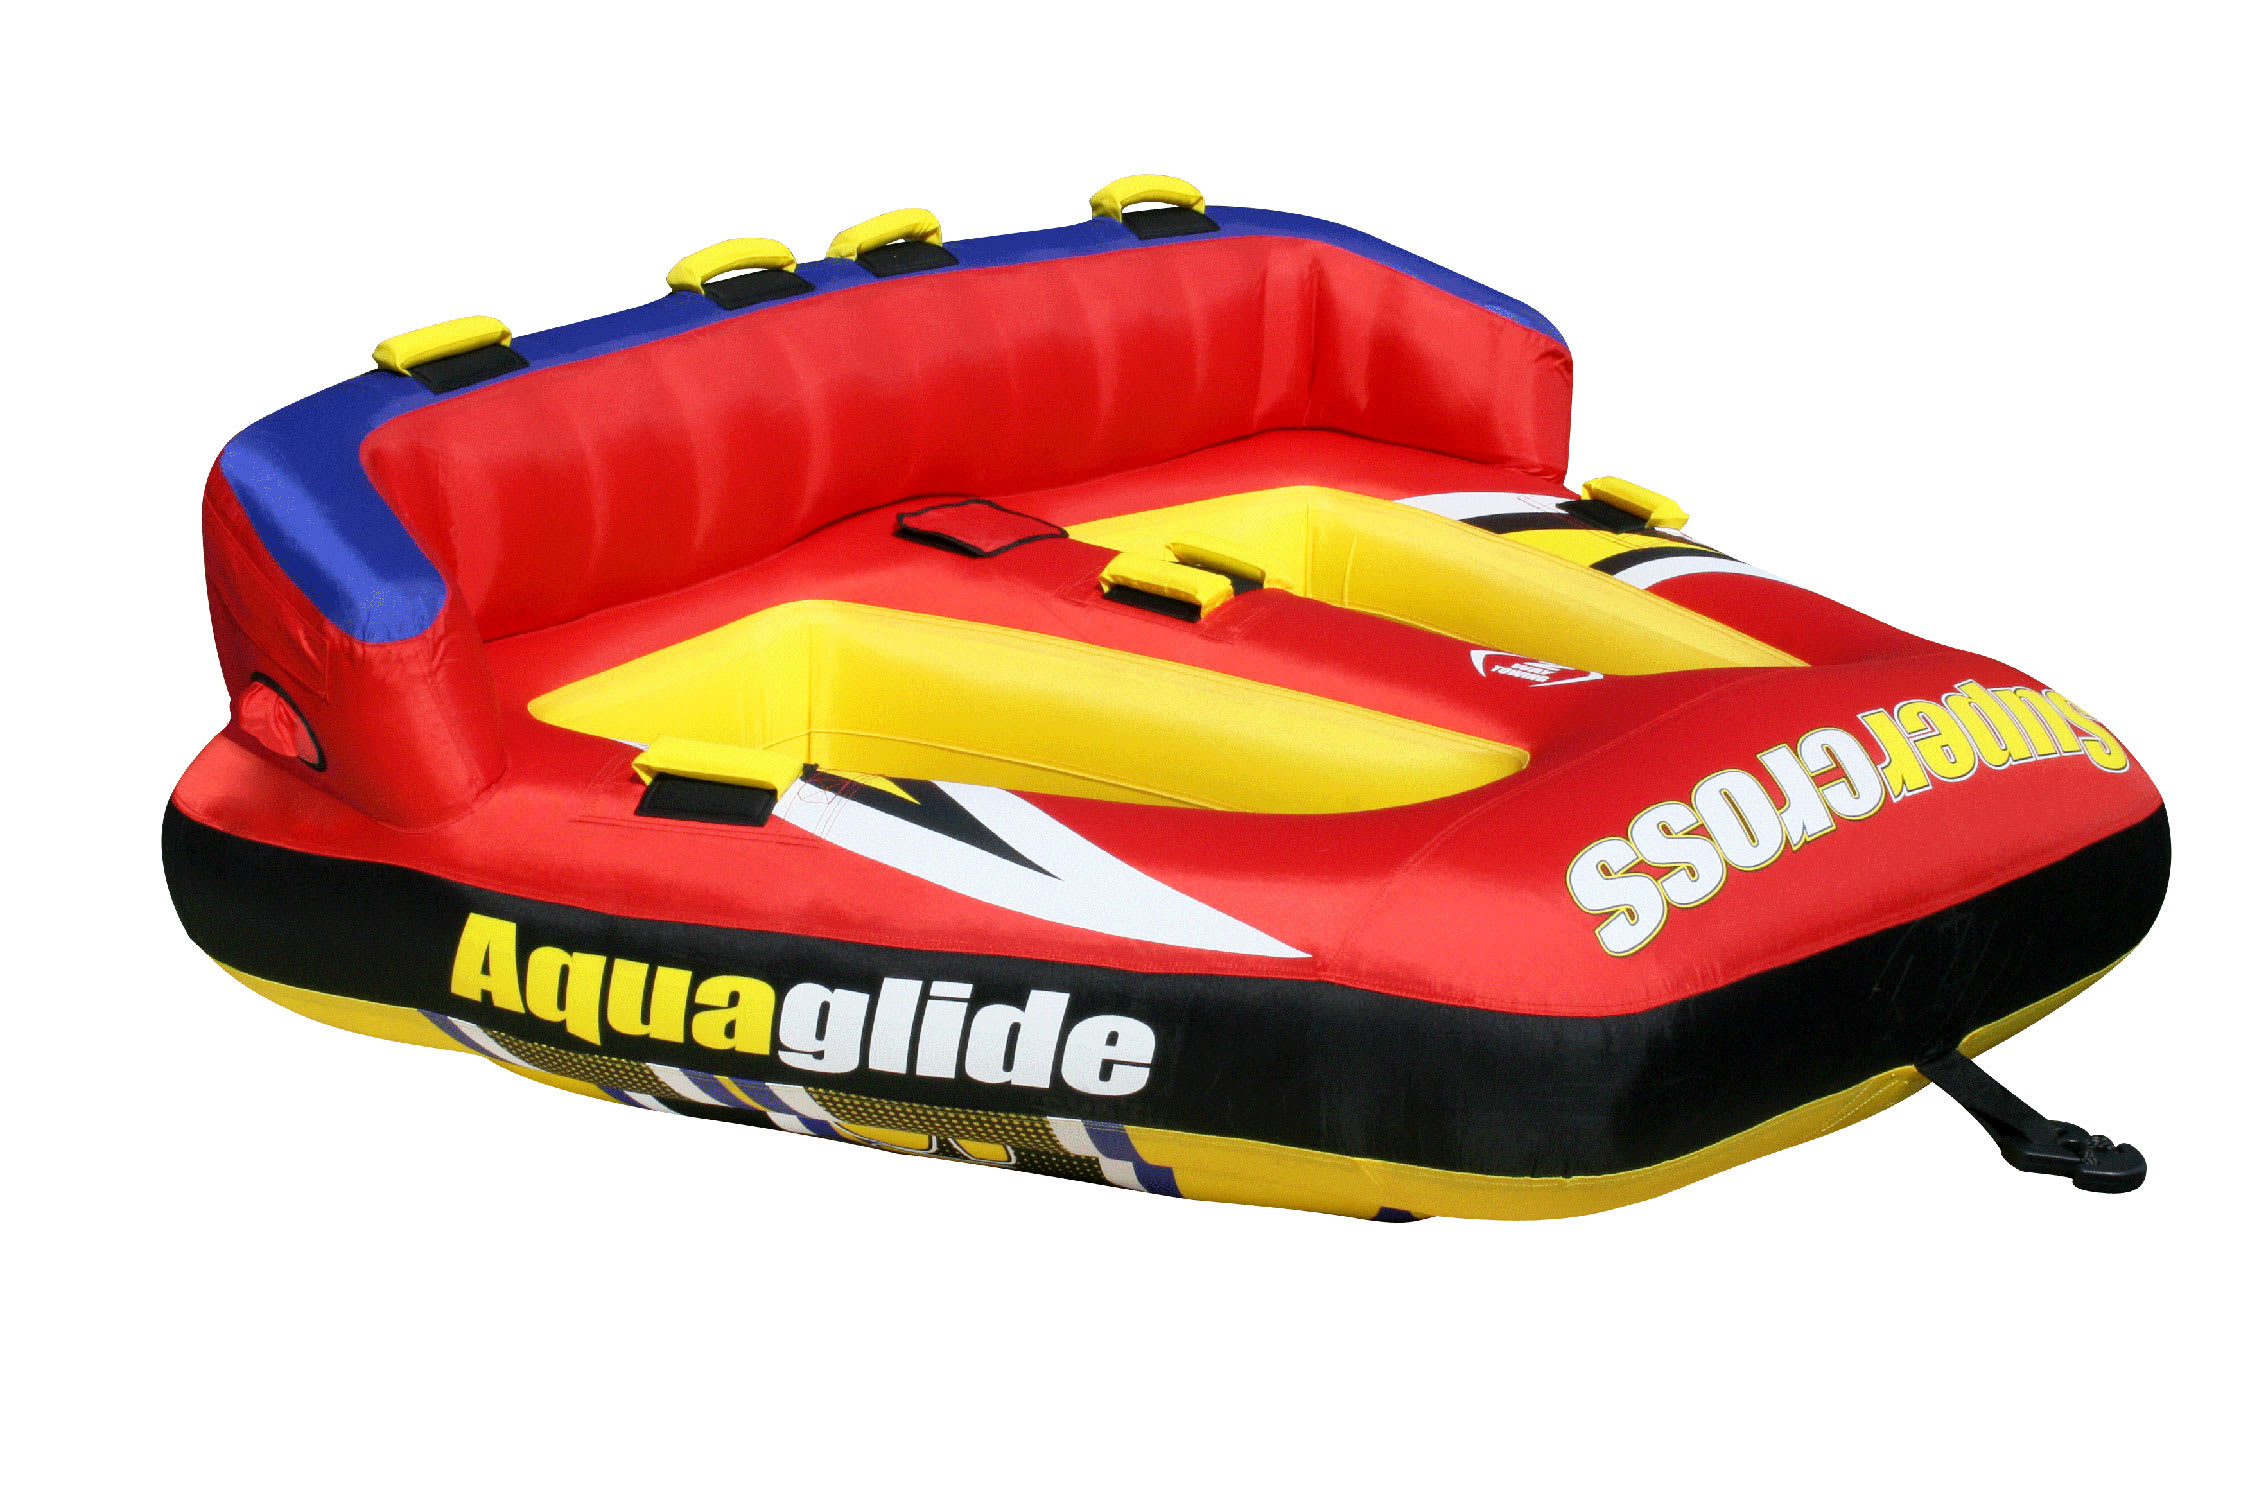 Aquaglide Supercross Le 2 Inflatable Towable Towing Harness Thumbnail 3